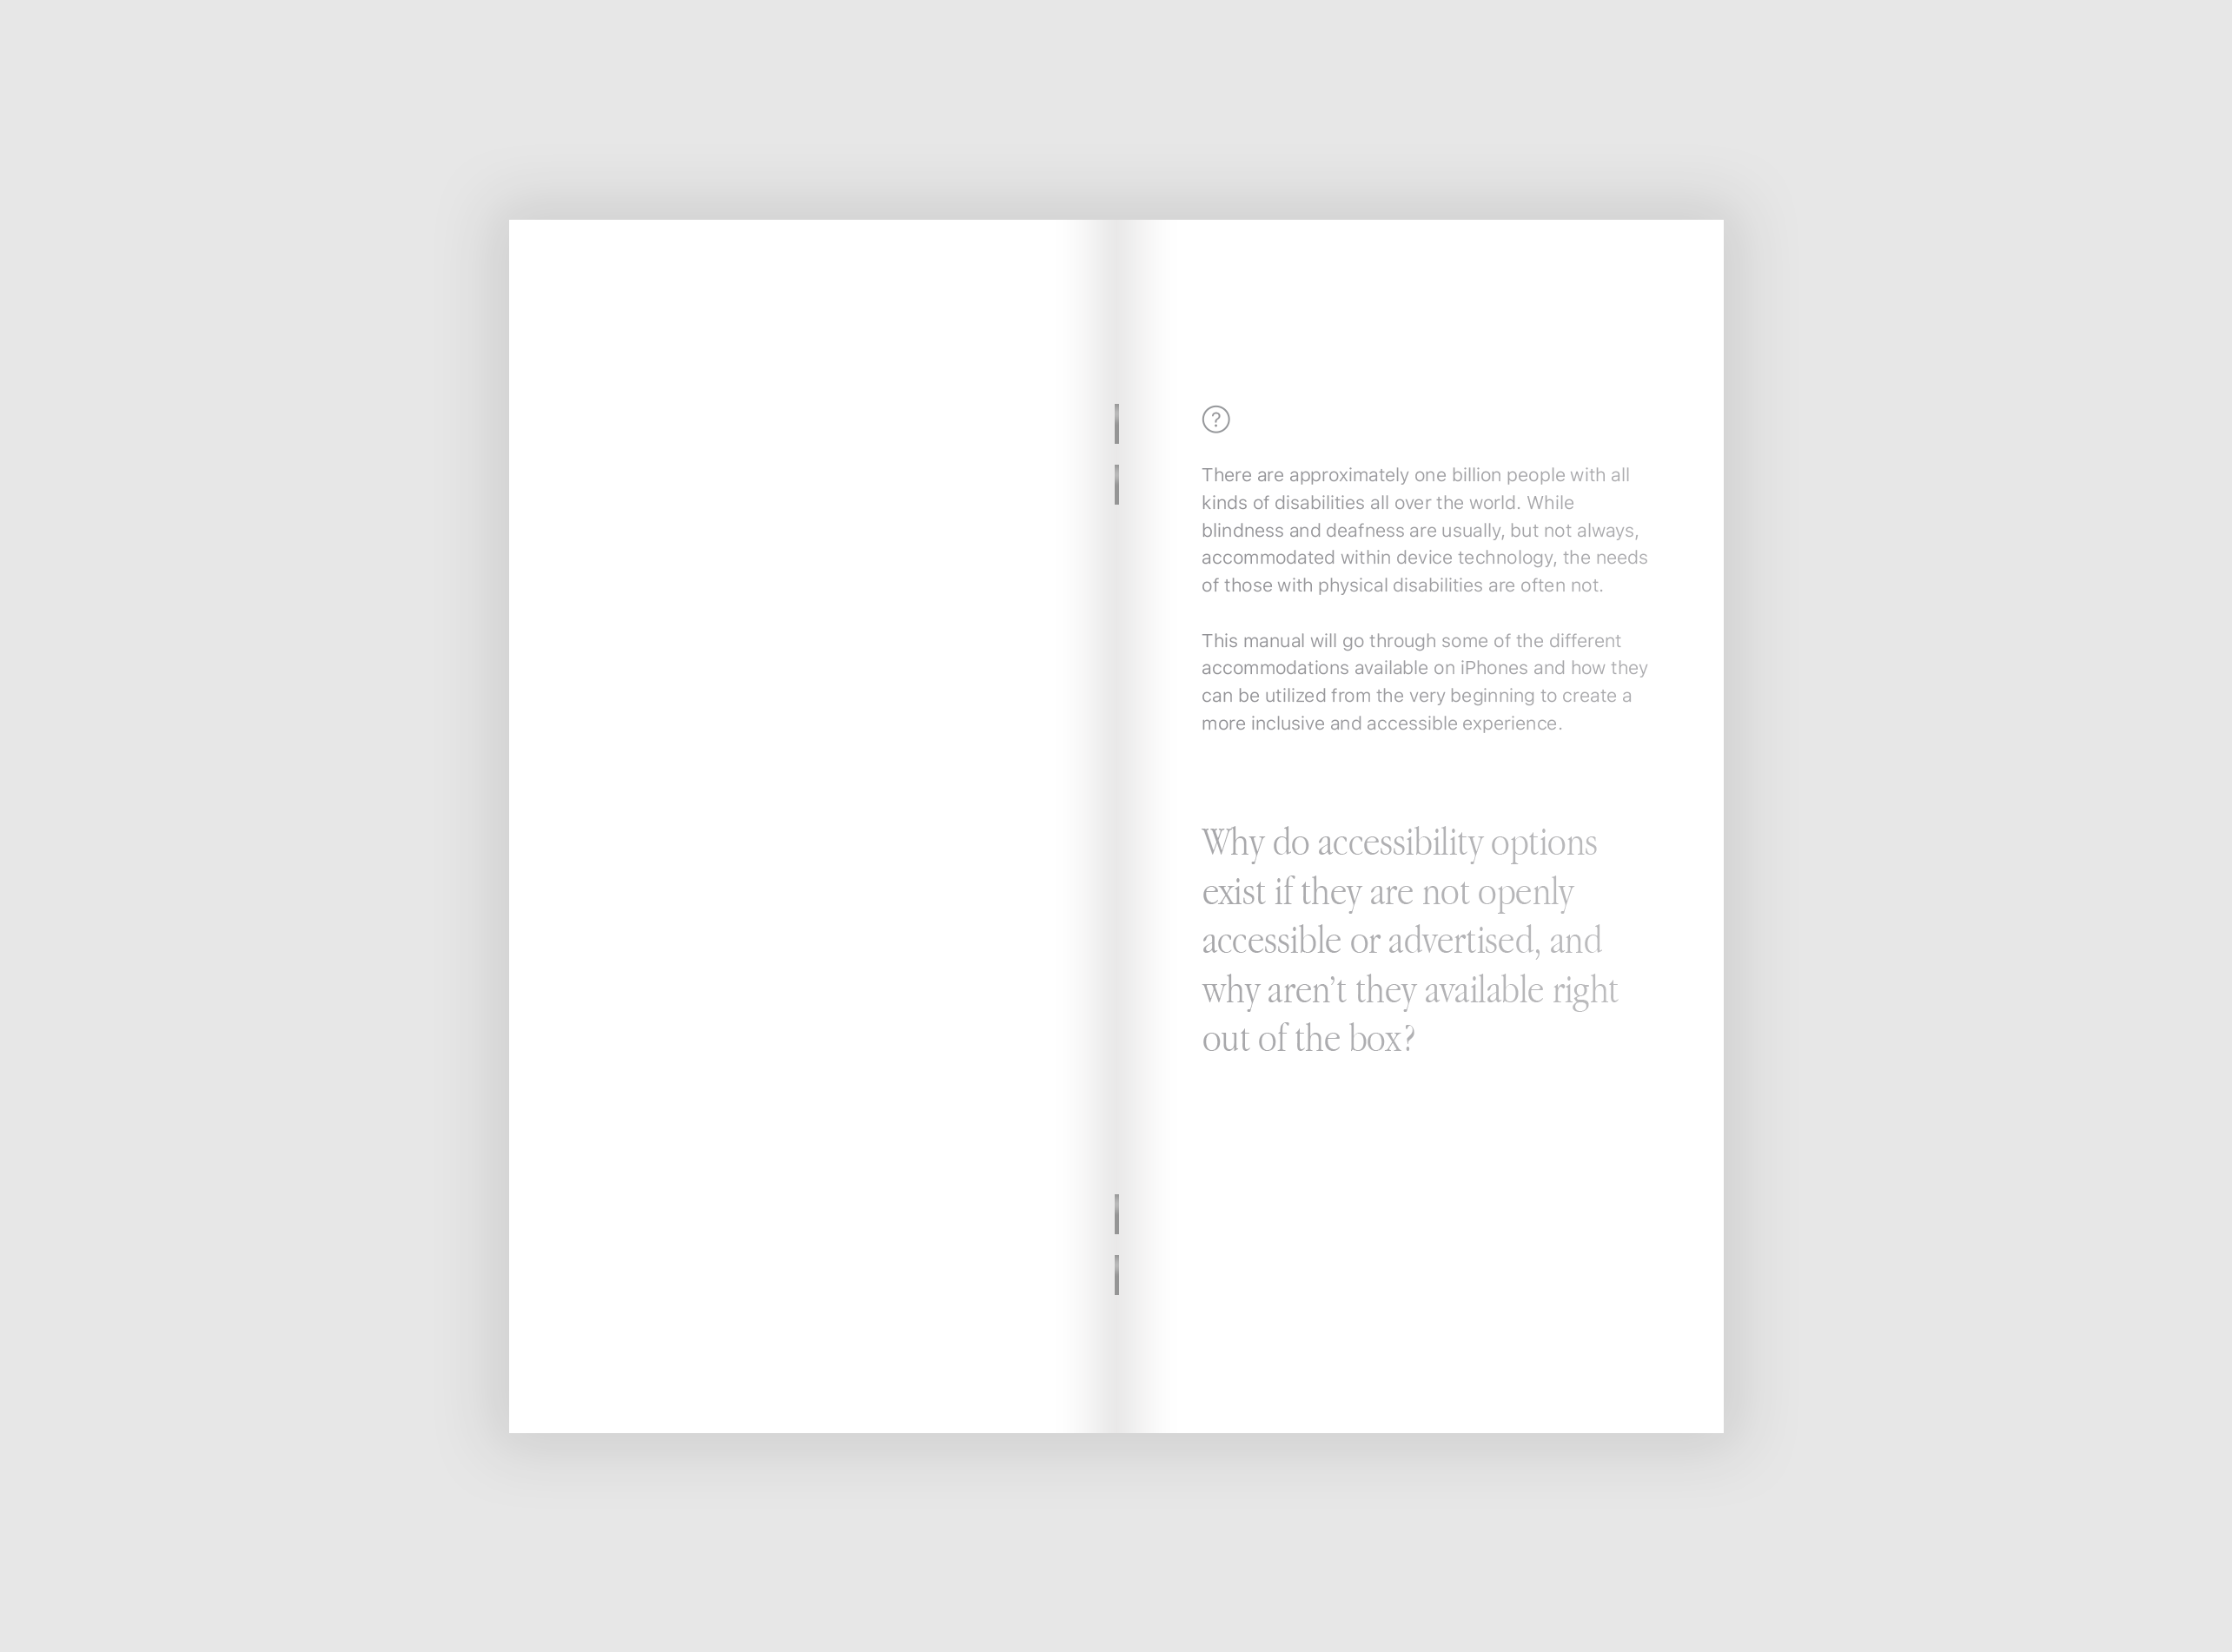 Thesis Book Pages 2 and 3